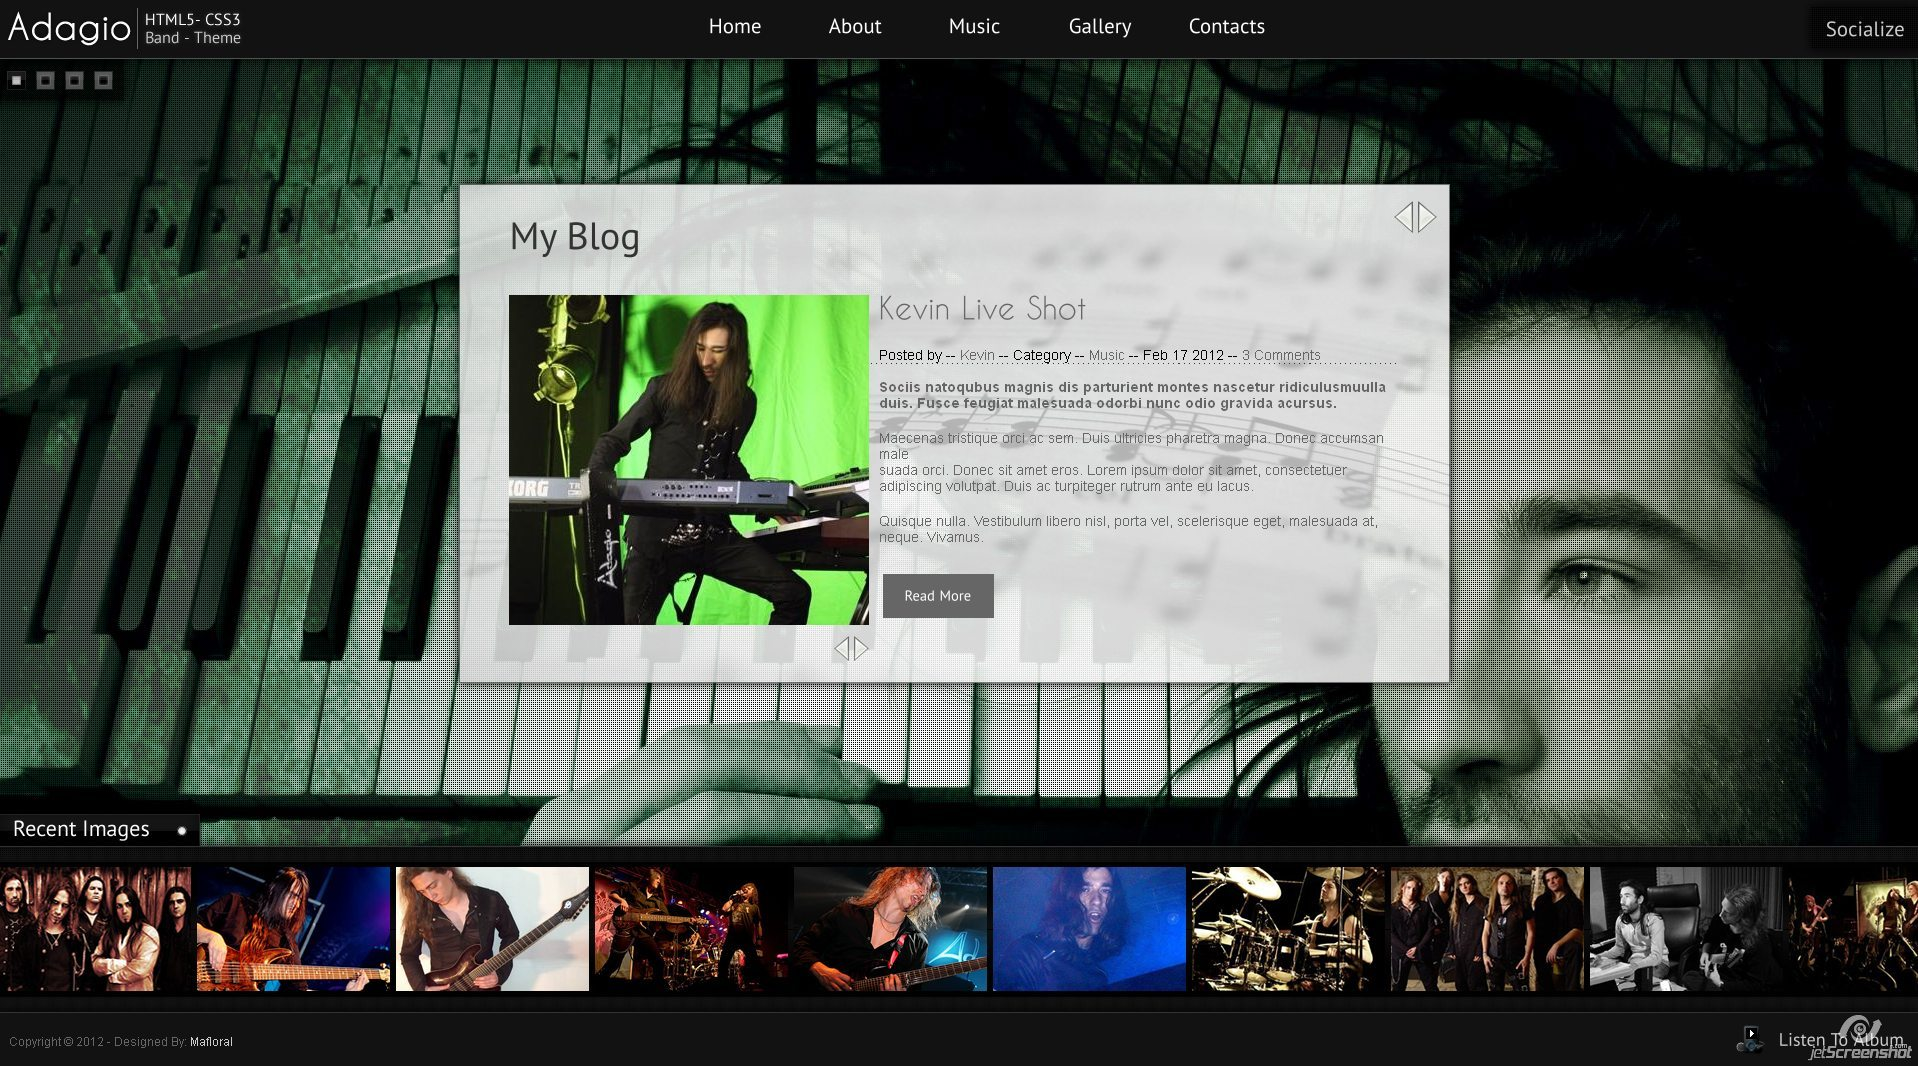 Adagio Musician Template - HTML5 - CSS3 - Blog Page